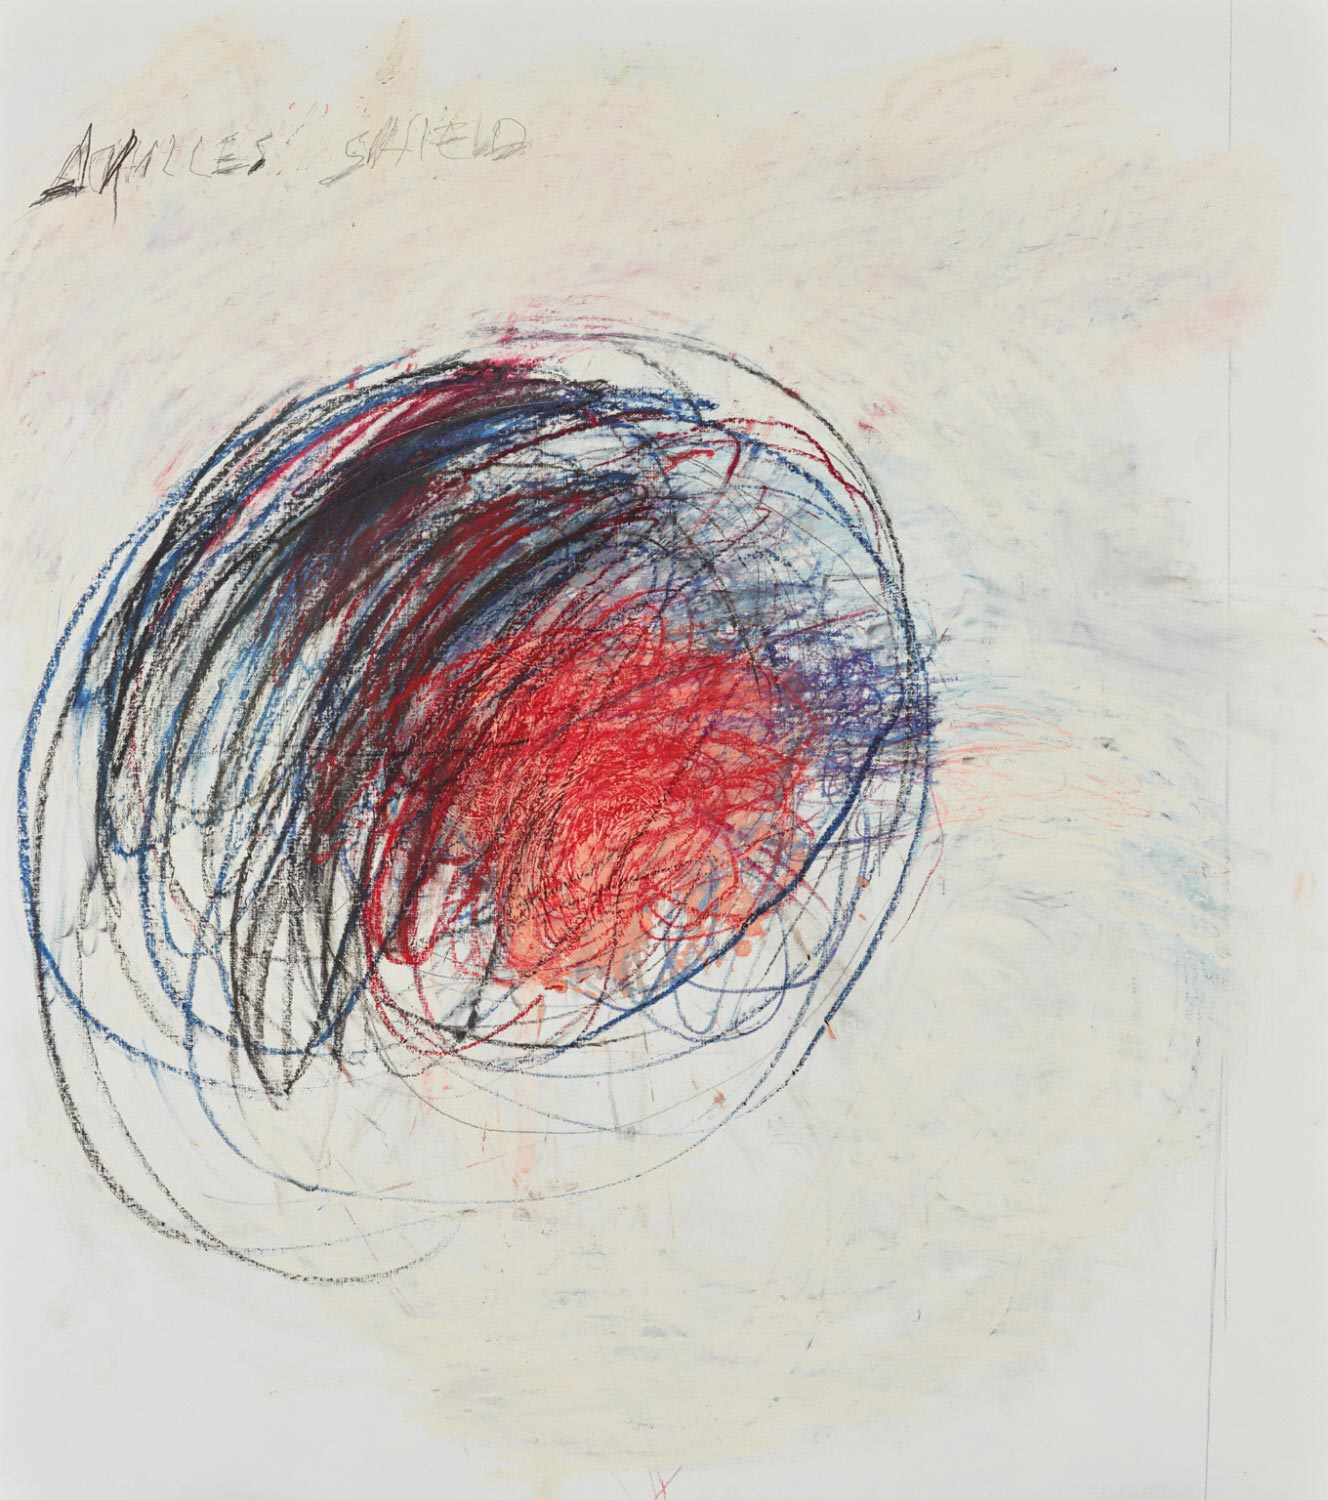 Cy Twombly, Fifty Days at Iliam: Shield of Achilles, 1978, Courtesy of Philadelphia Museum of Art, Gift (by exchange) of Samuel S. White 3rd and Vera White, 1989, 1989-90-1, © Cy Twombly Foundation